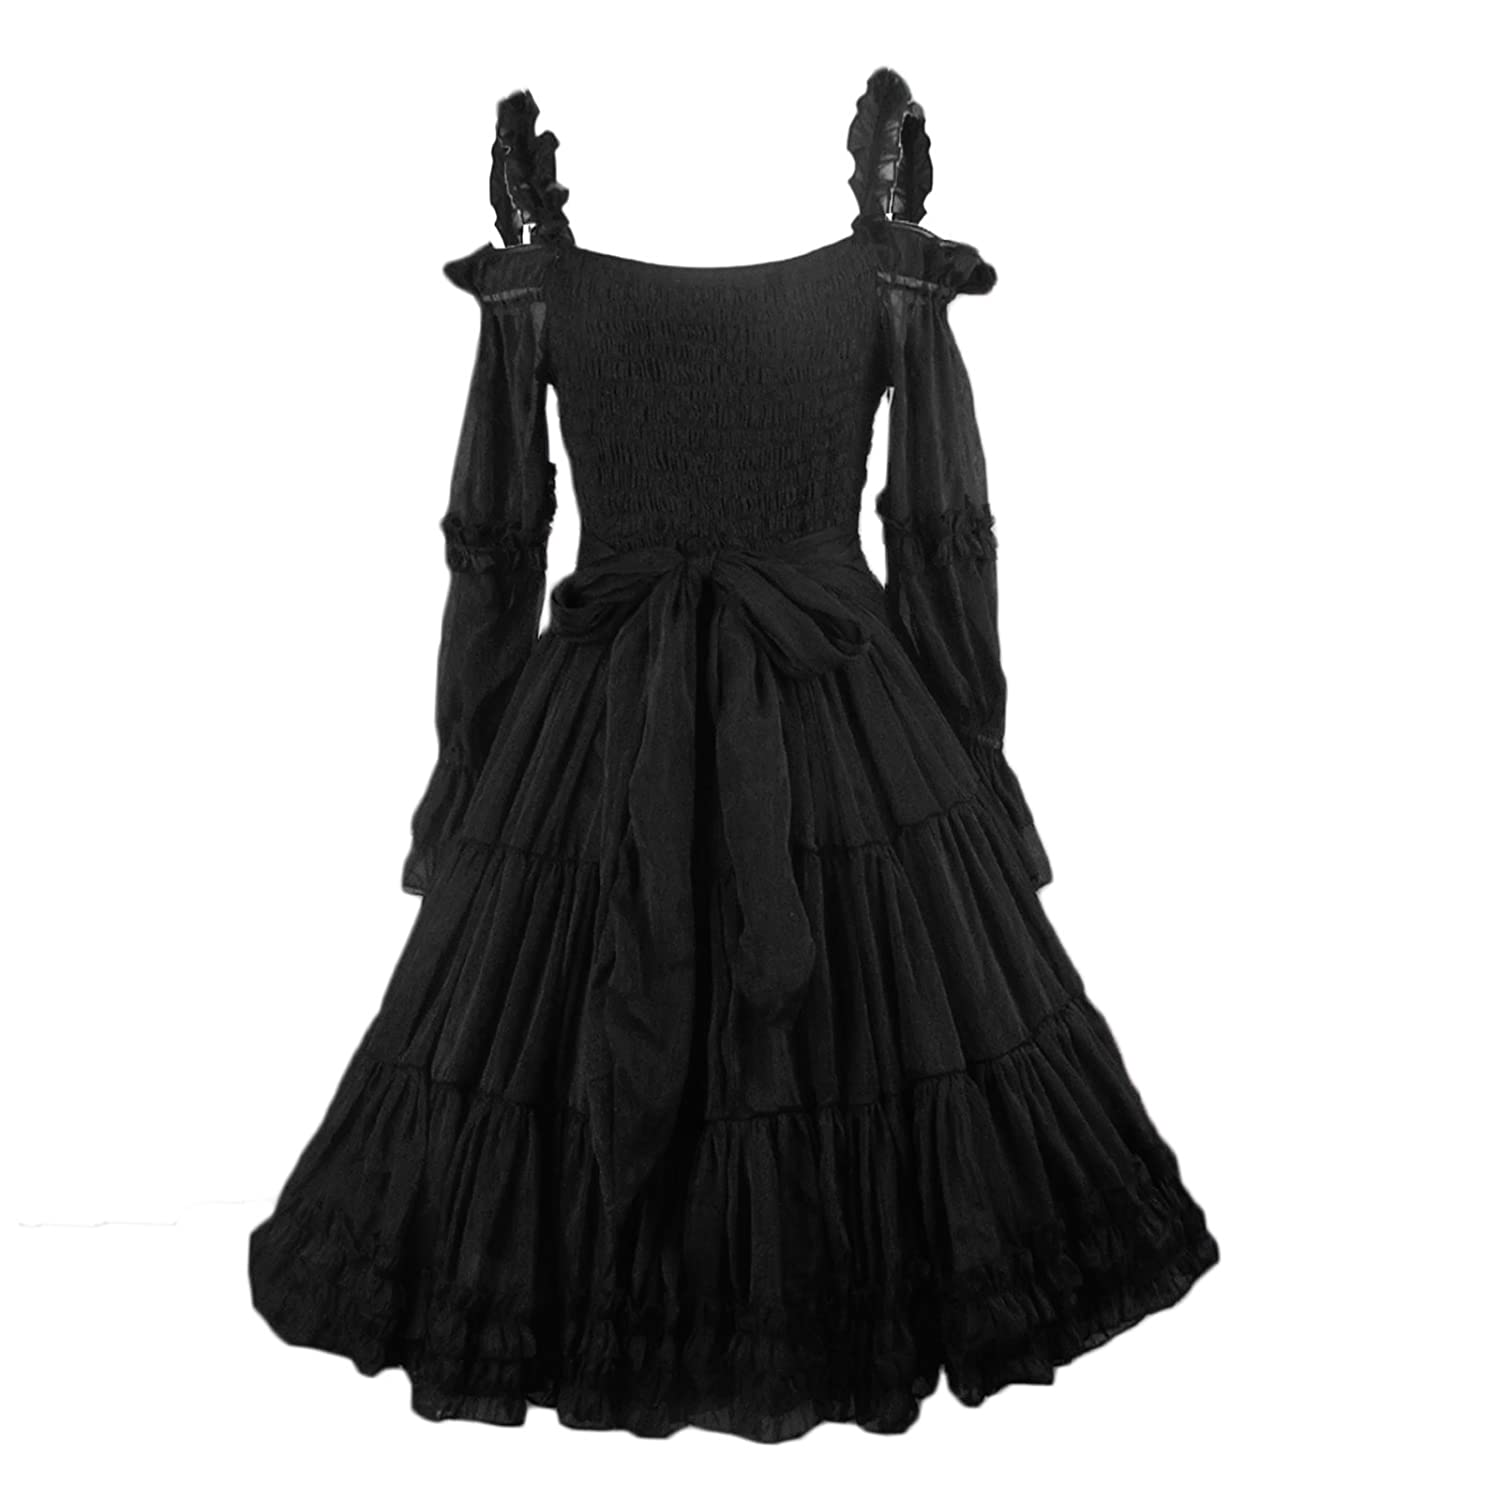 Victorian Prom Dress Vintage 50s Rockabilly